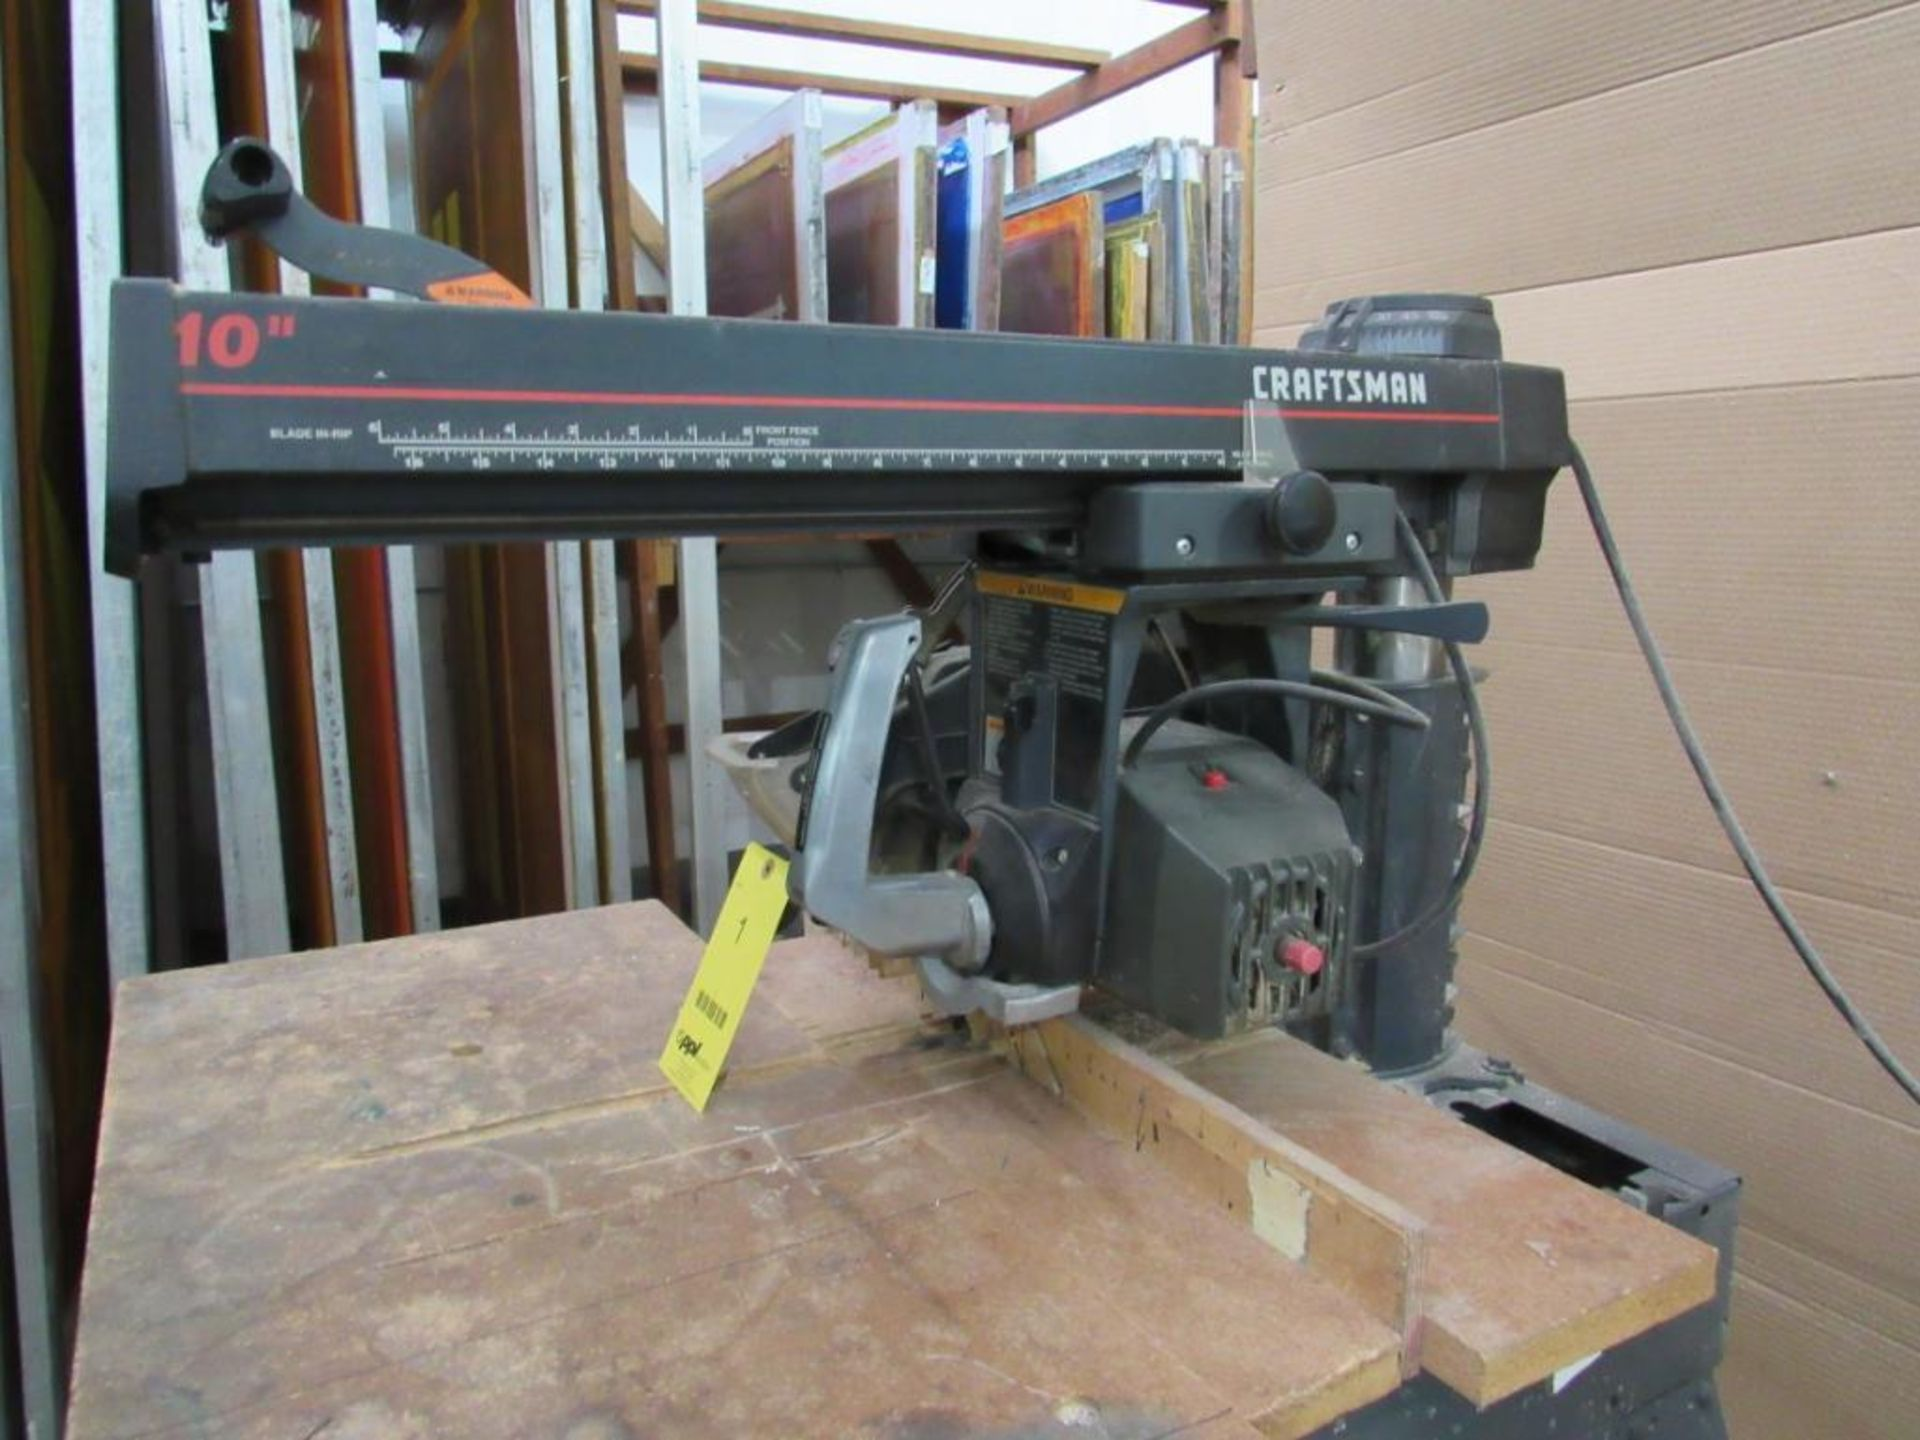 Craftsman 10 ft. Table Saw, 2.75 HP - Image 2 of 3